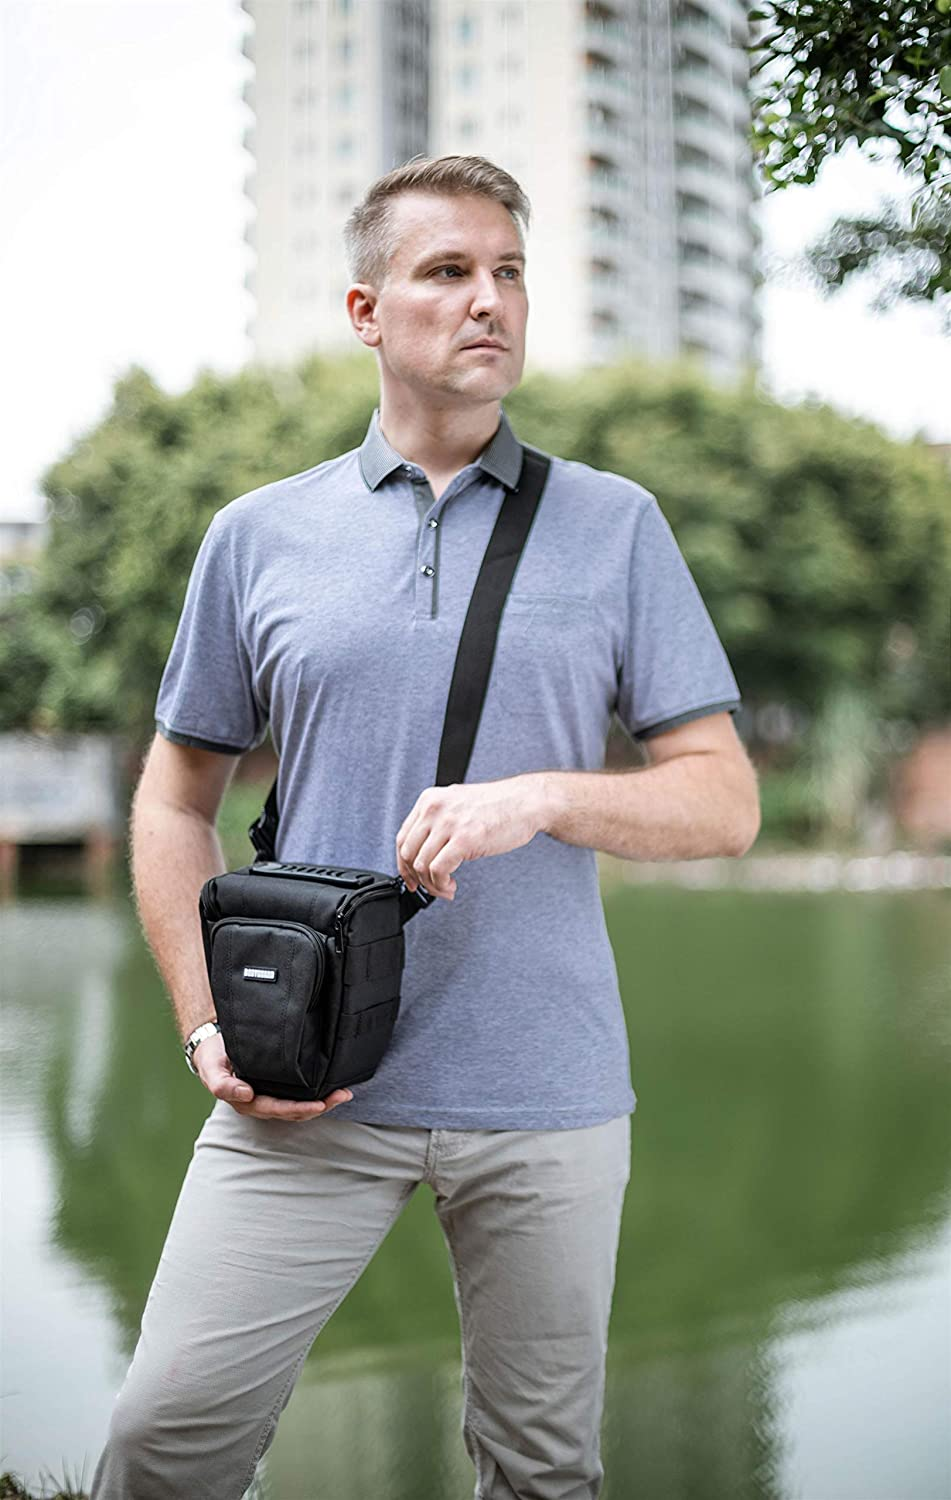 Bodyguard Colt Bag Photo Bag Mirror Reflex Colt Easy black suitable for Nikon D800 D3500 D5300 D5600 D7500 Canon EOS 2000D 4000D 750D 200D 77D 80D